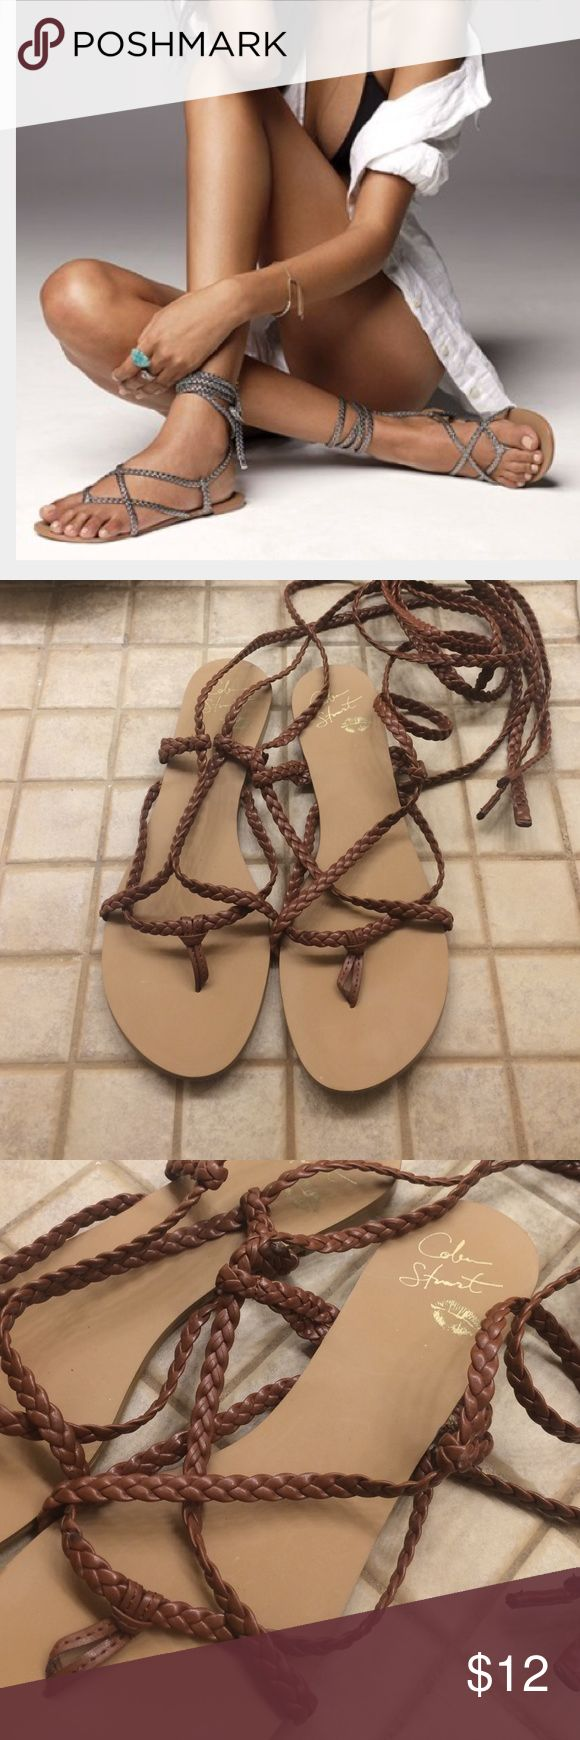 Colin Stuart Wrap Sandals Colin Stuart wrap sandals from Victoria's Secret in cognac (brown). Brand new in box never worn! Colin Stuart Shoes Sandals